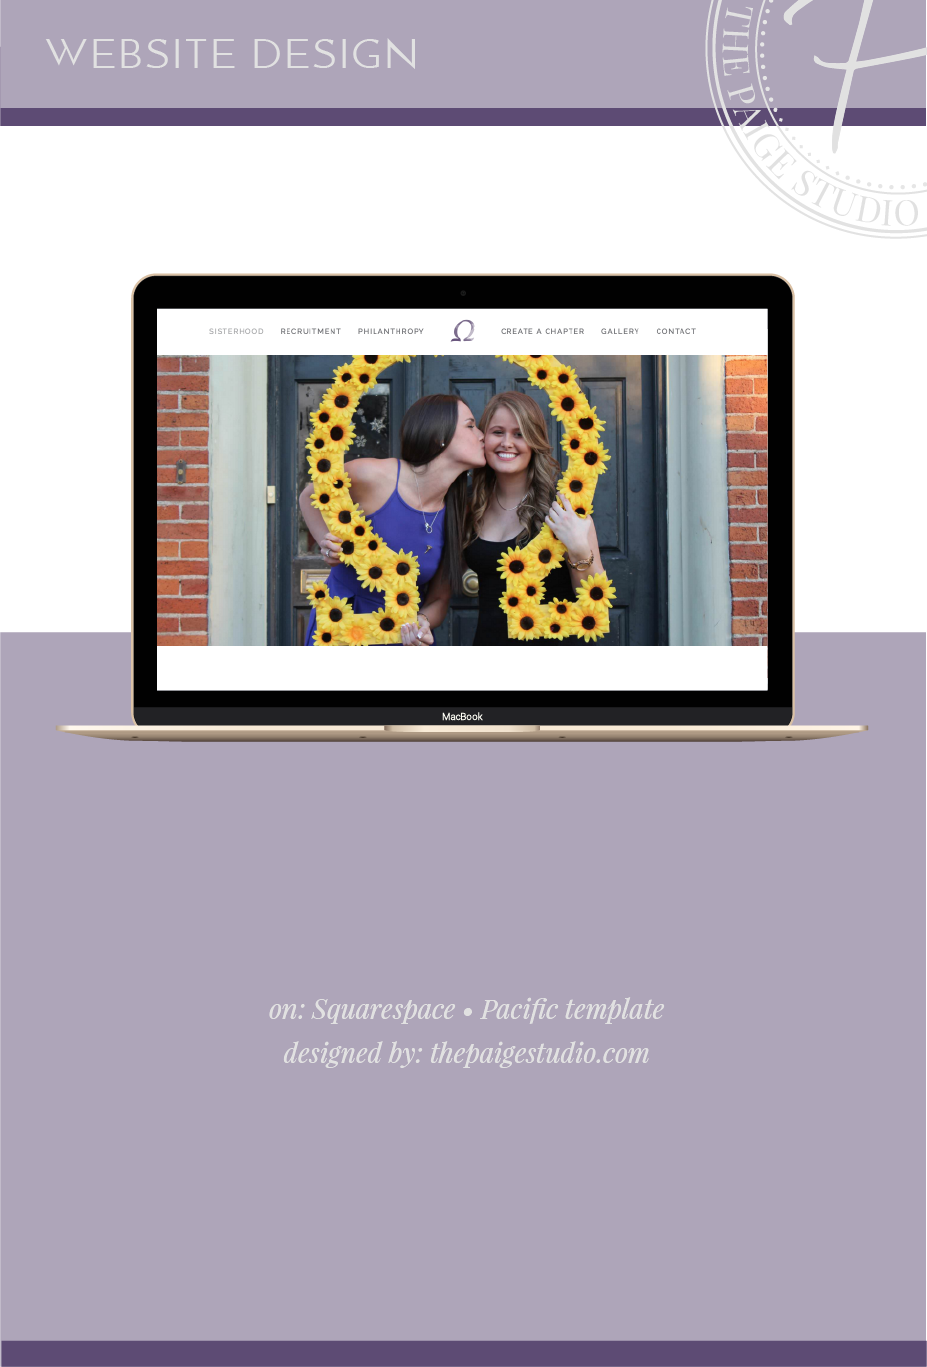 Sorority website design project with Squarespace's Pacific template